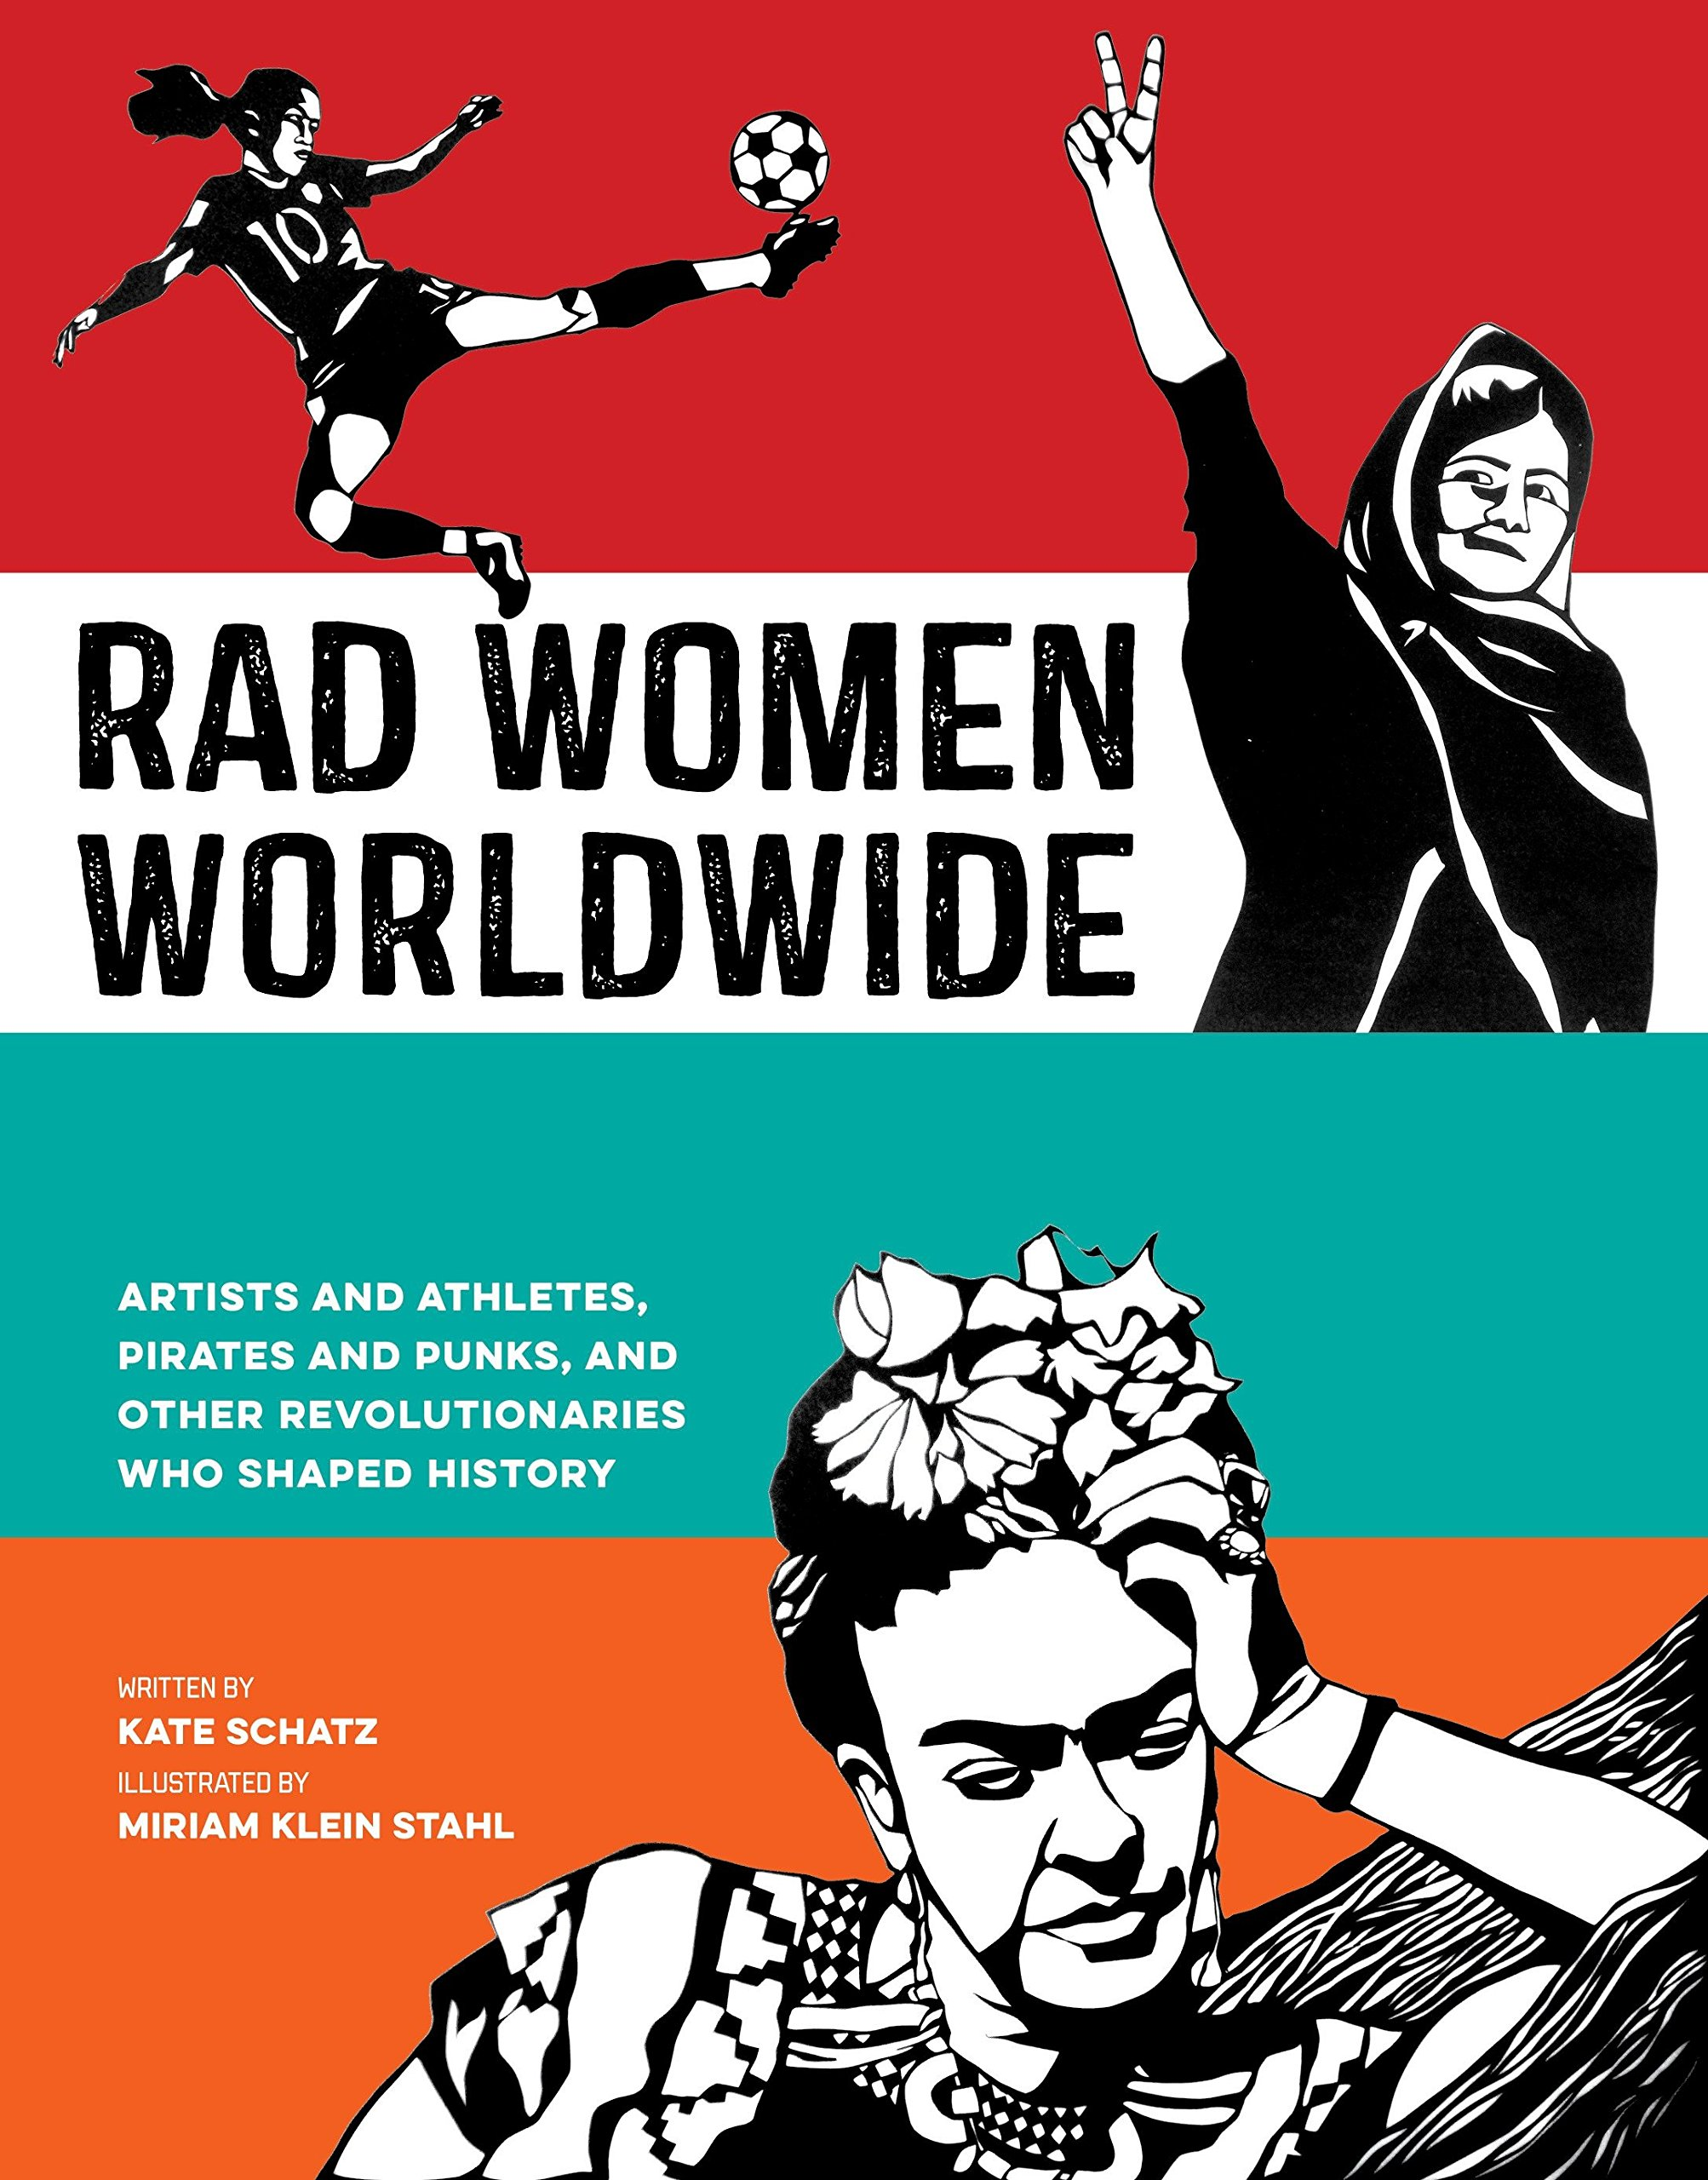 Rad Women Worldwide: Artists and Athletes, Pirates and Punks, and Other  Revolutionaries Who Shaped History: Schatz, Kate, Klein Stahl, Miriam:  9780399578861: Amazon.com: Books